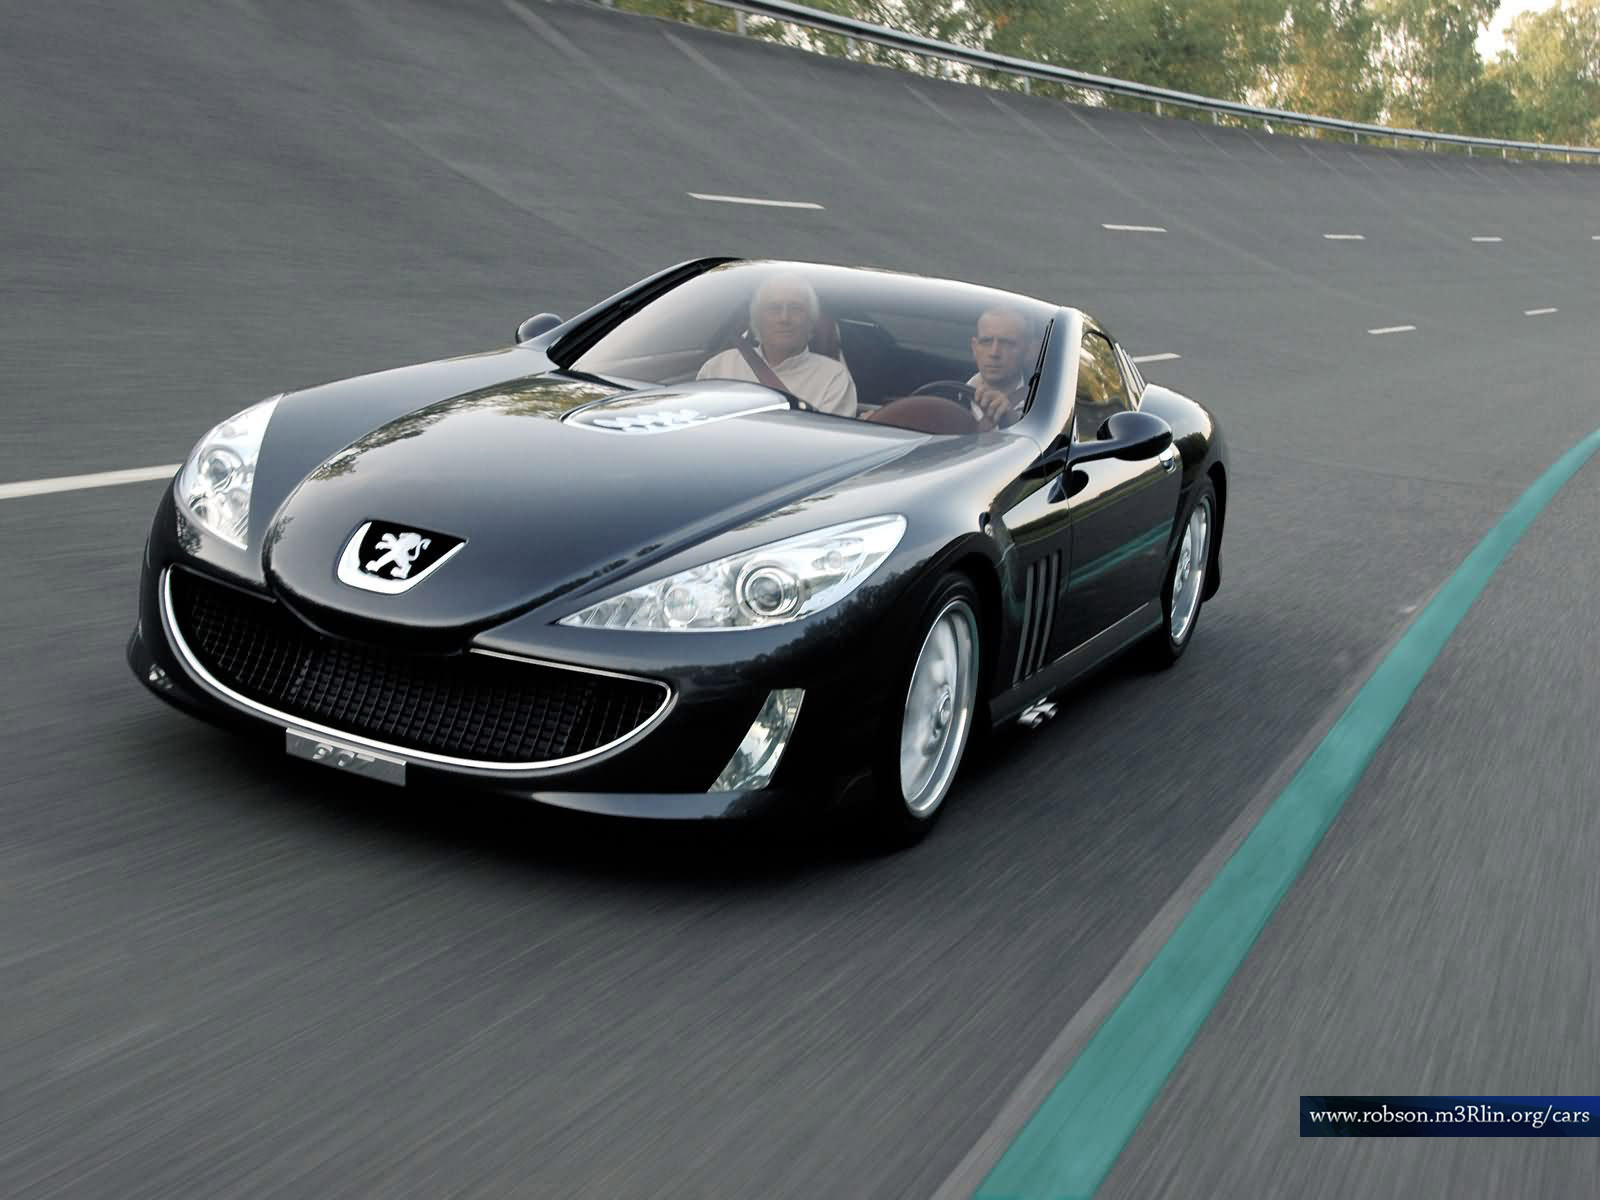 the peugeot 907 is a concept car from revealed first at the Wallpapers HD